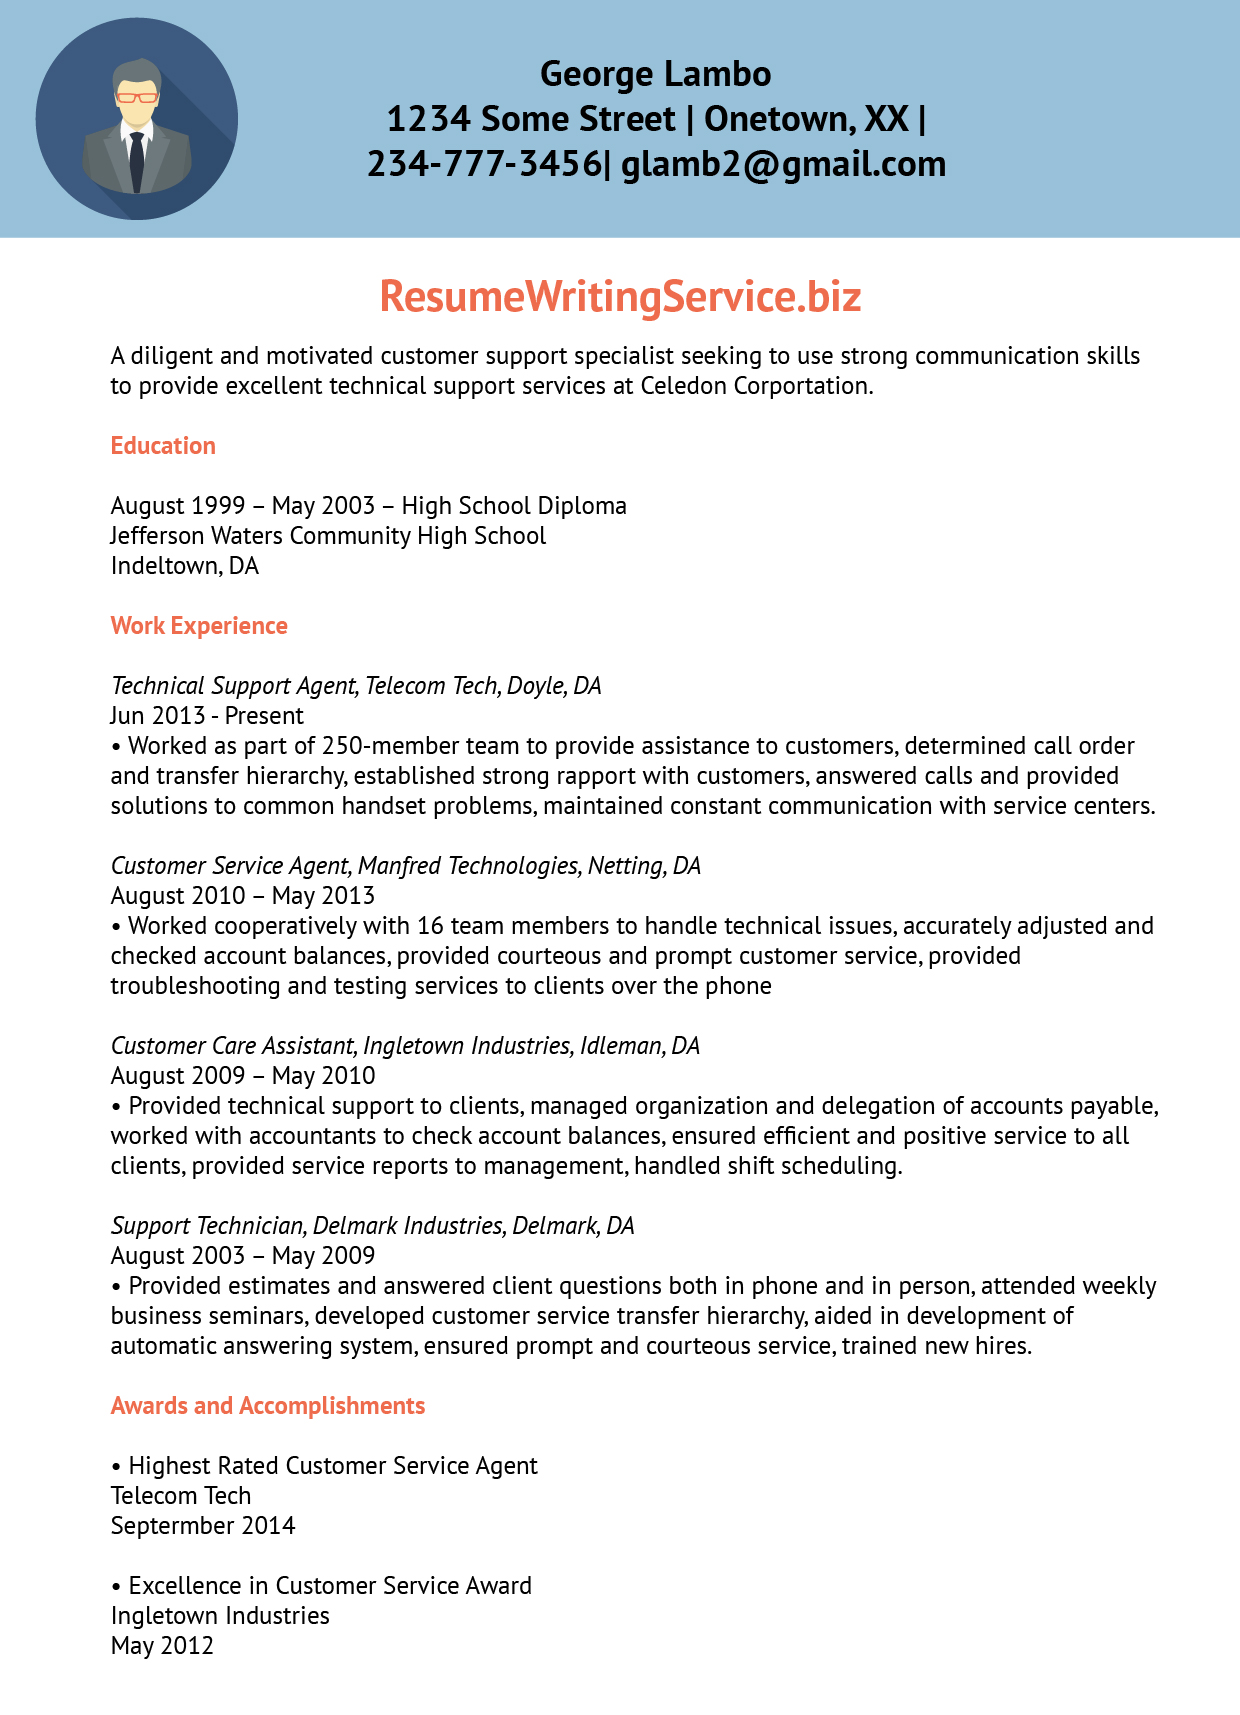 Technical Support Resume Sample Technical Support Agent Resume Sample